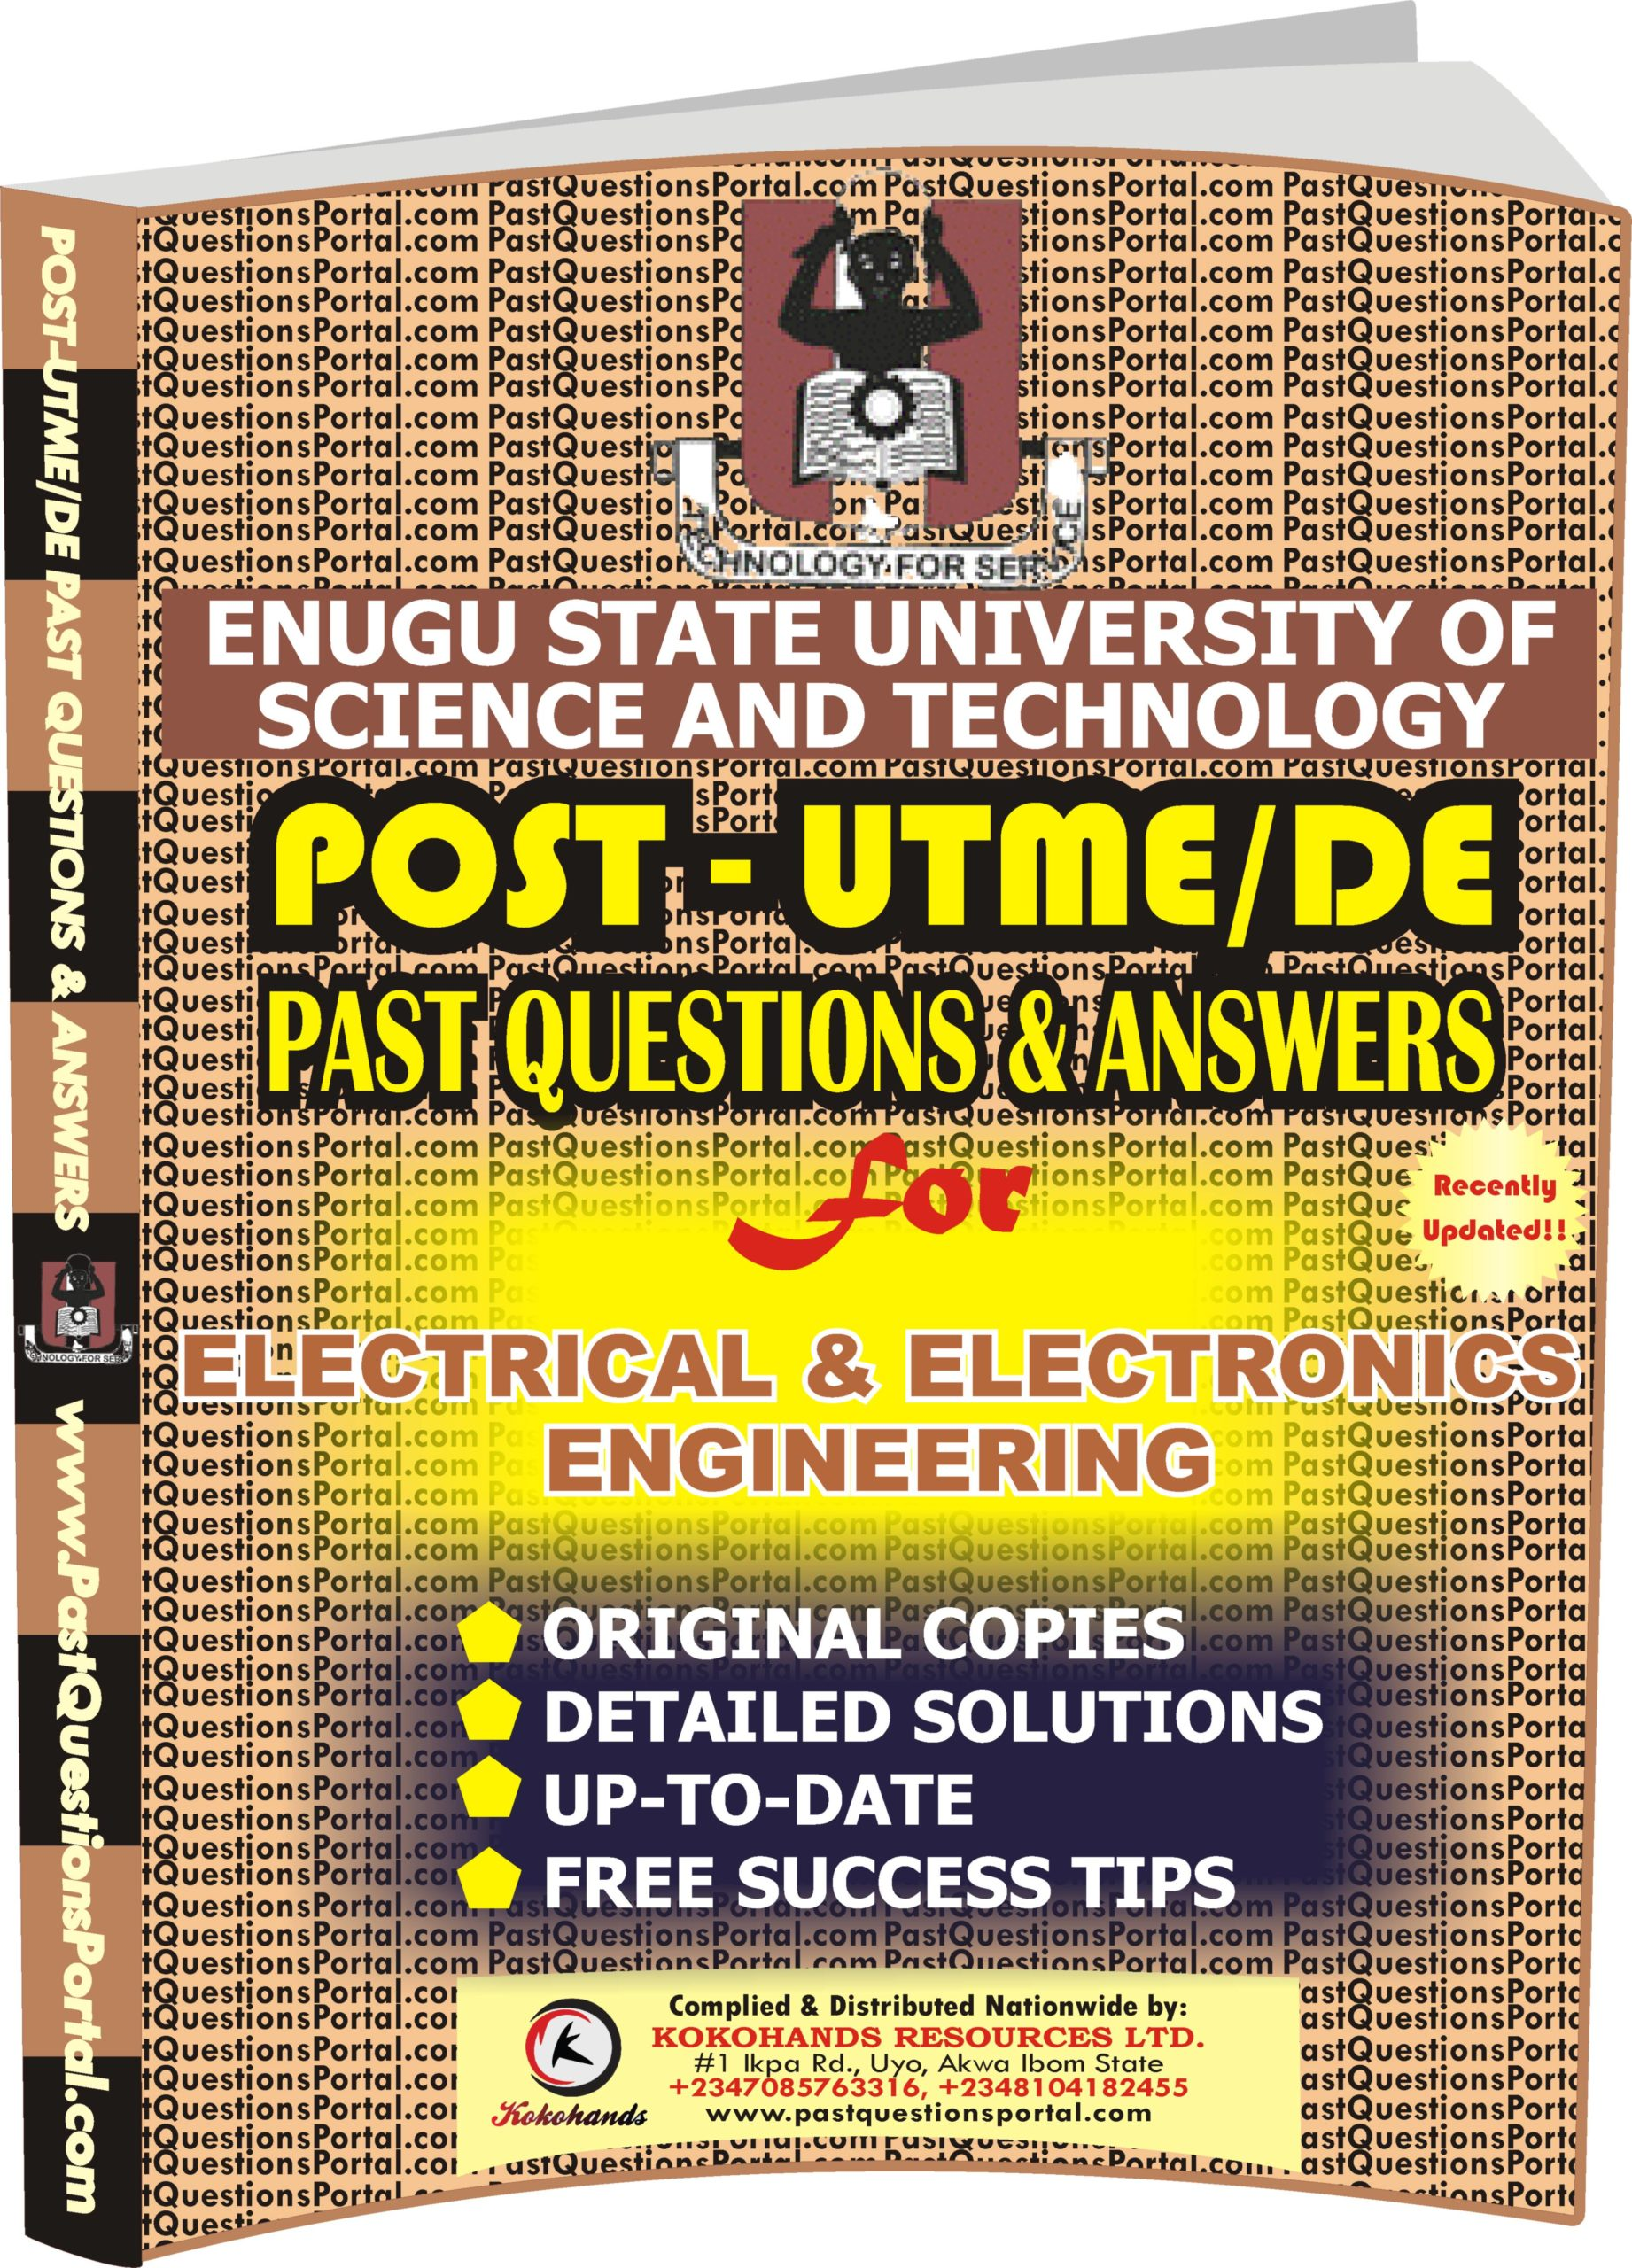 ESUT Post UTME Past Questions for Electrical and Electronic Engineering